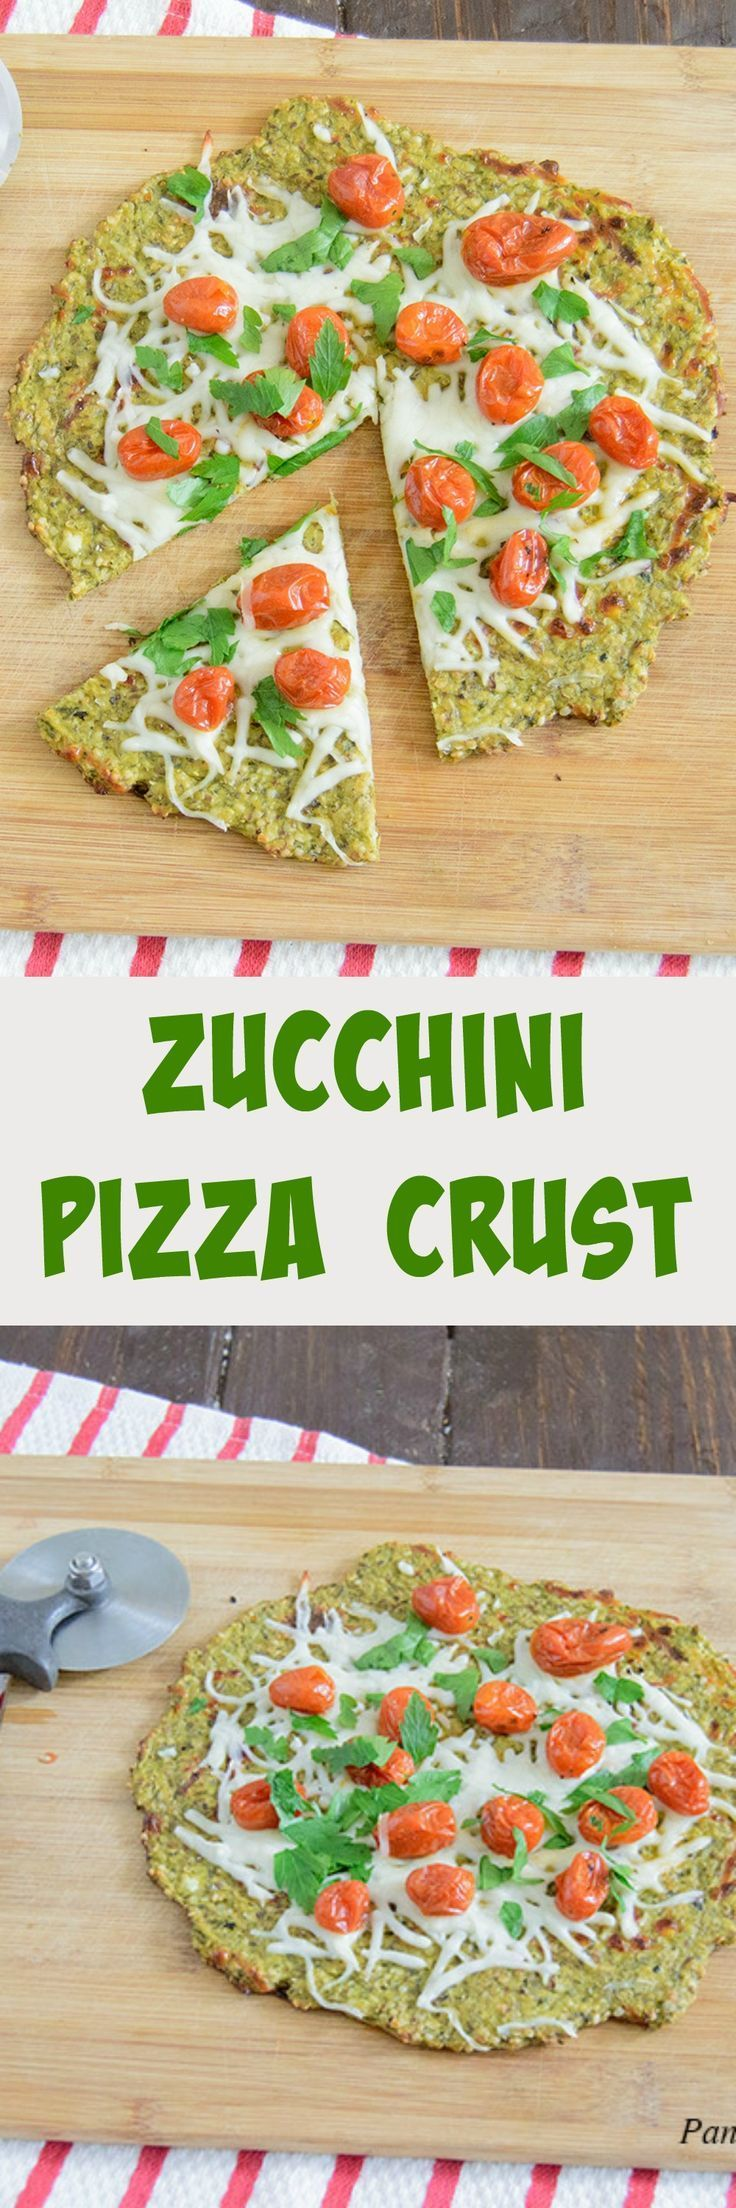 Zucchini Pizza Crust (Low Carb)